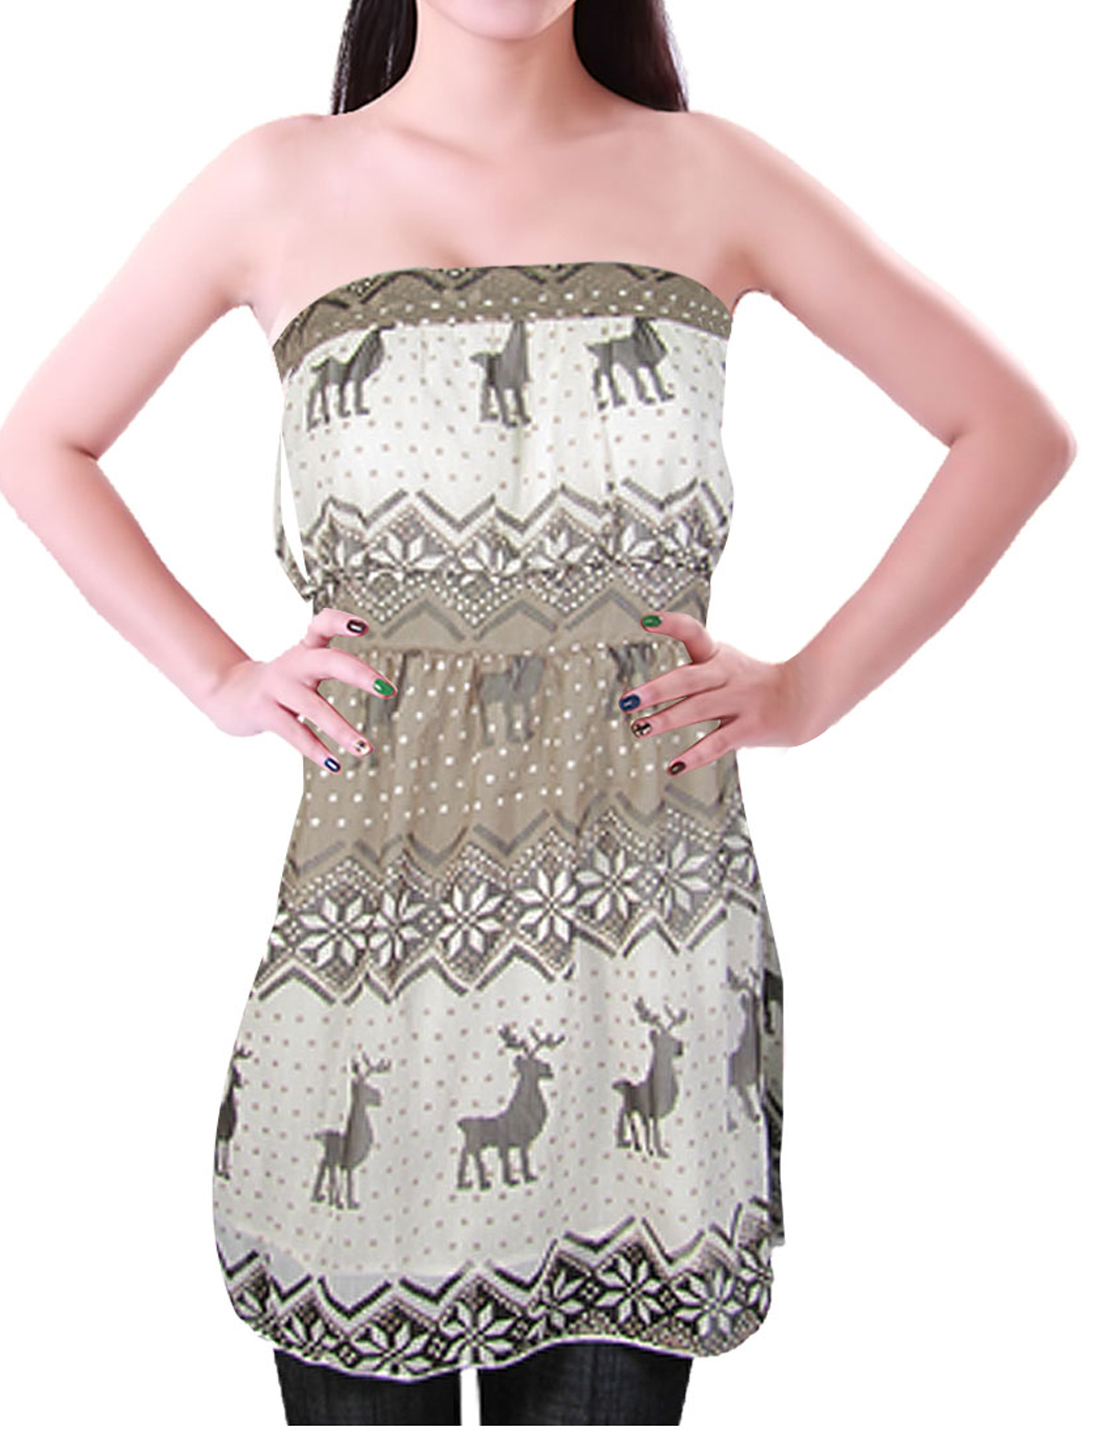 Ladies XS Brown White Sleeveless Deer Pattern Tube Top